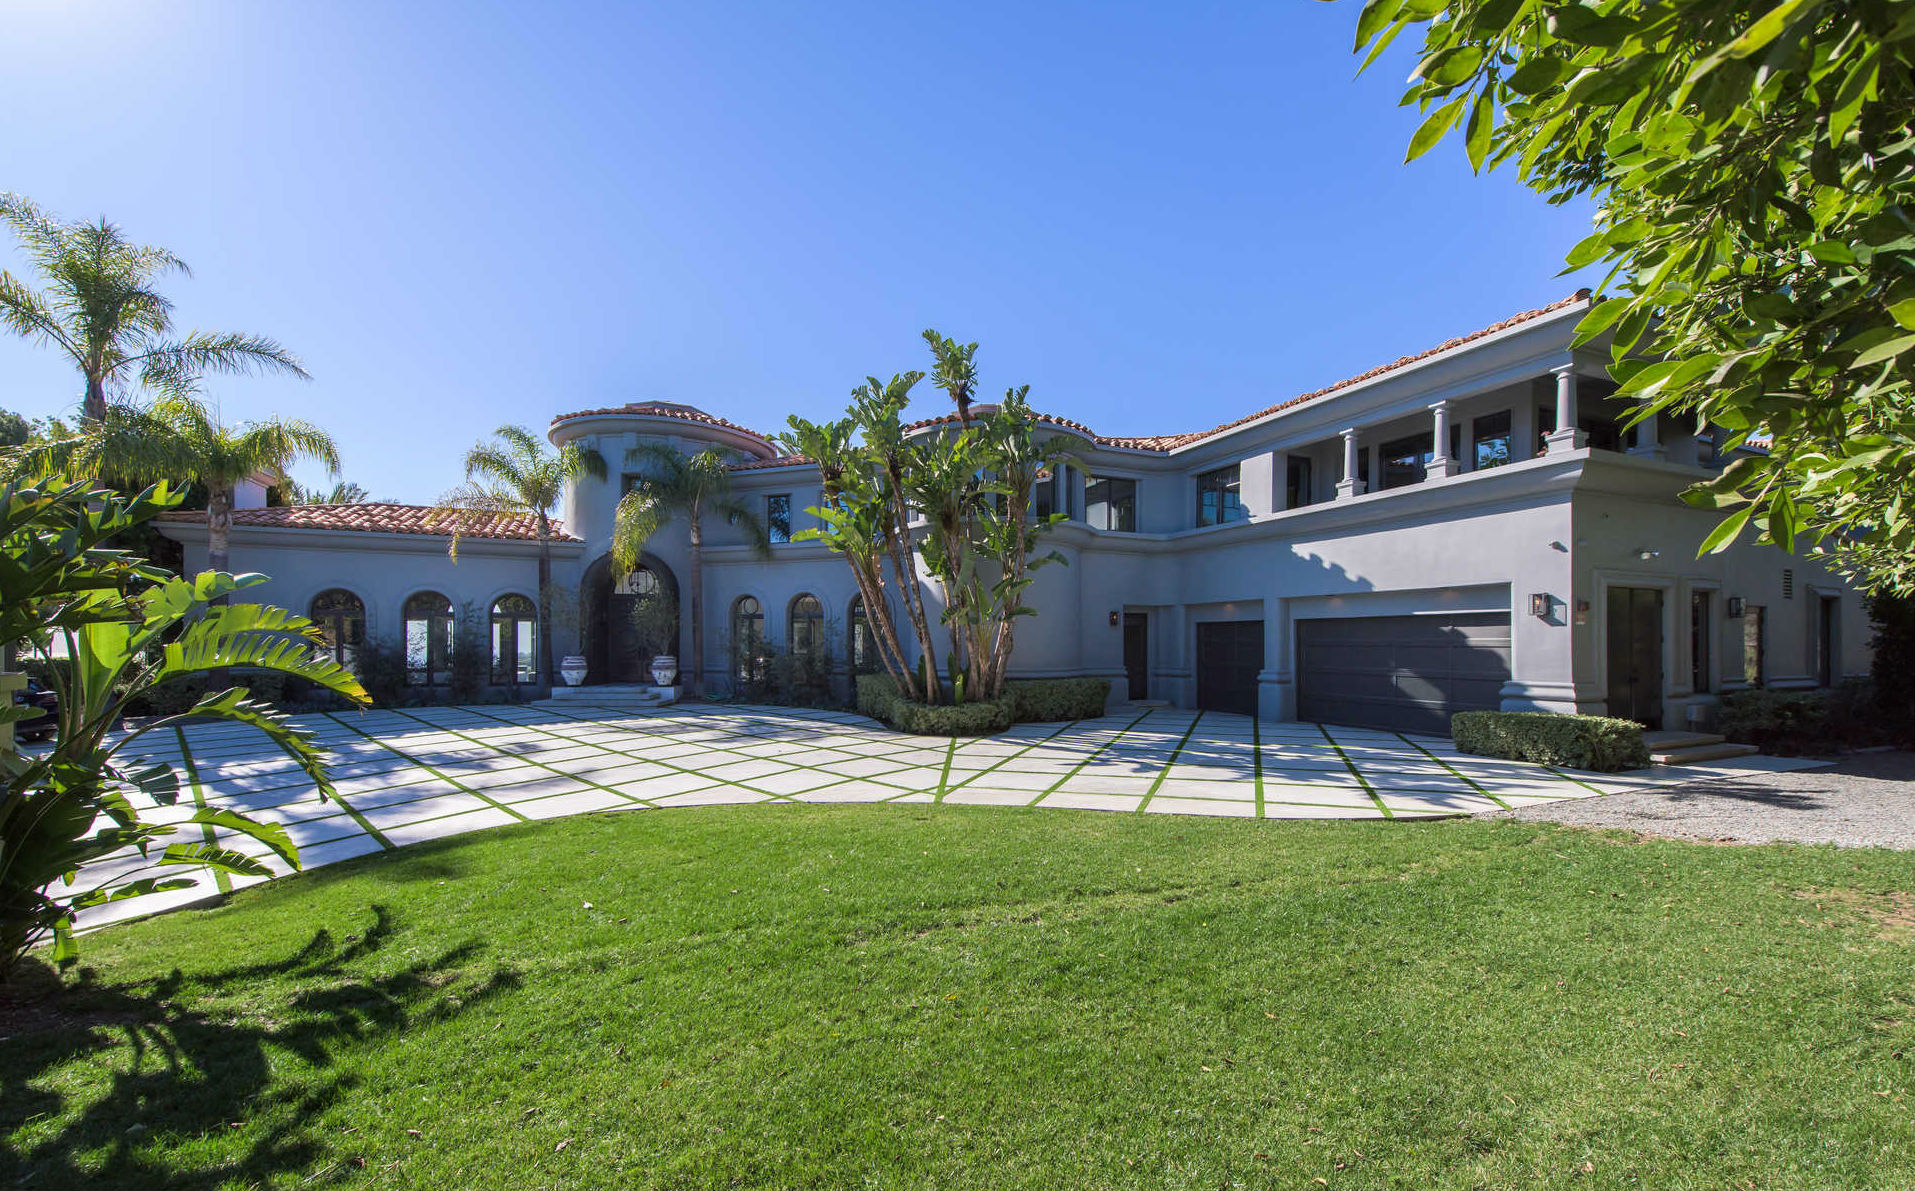 Kylie Jenner's Temporary Beverly Hills Home Costs $125,000 a Month kylie jenner Kylie Jenner's Temporary Beverly Hills Home Costs $125,000 a Month Kylie Jenners Temporary Beverlly Hills Home Costs 125000 a Month